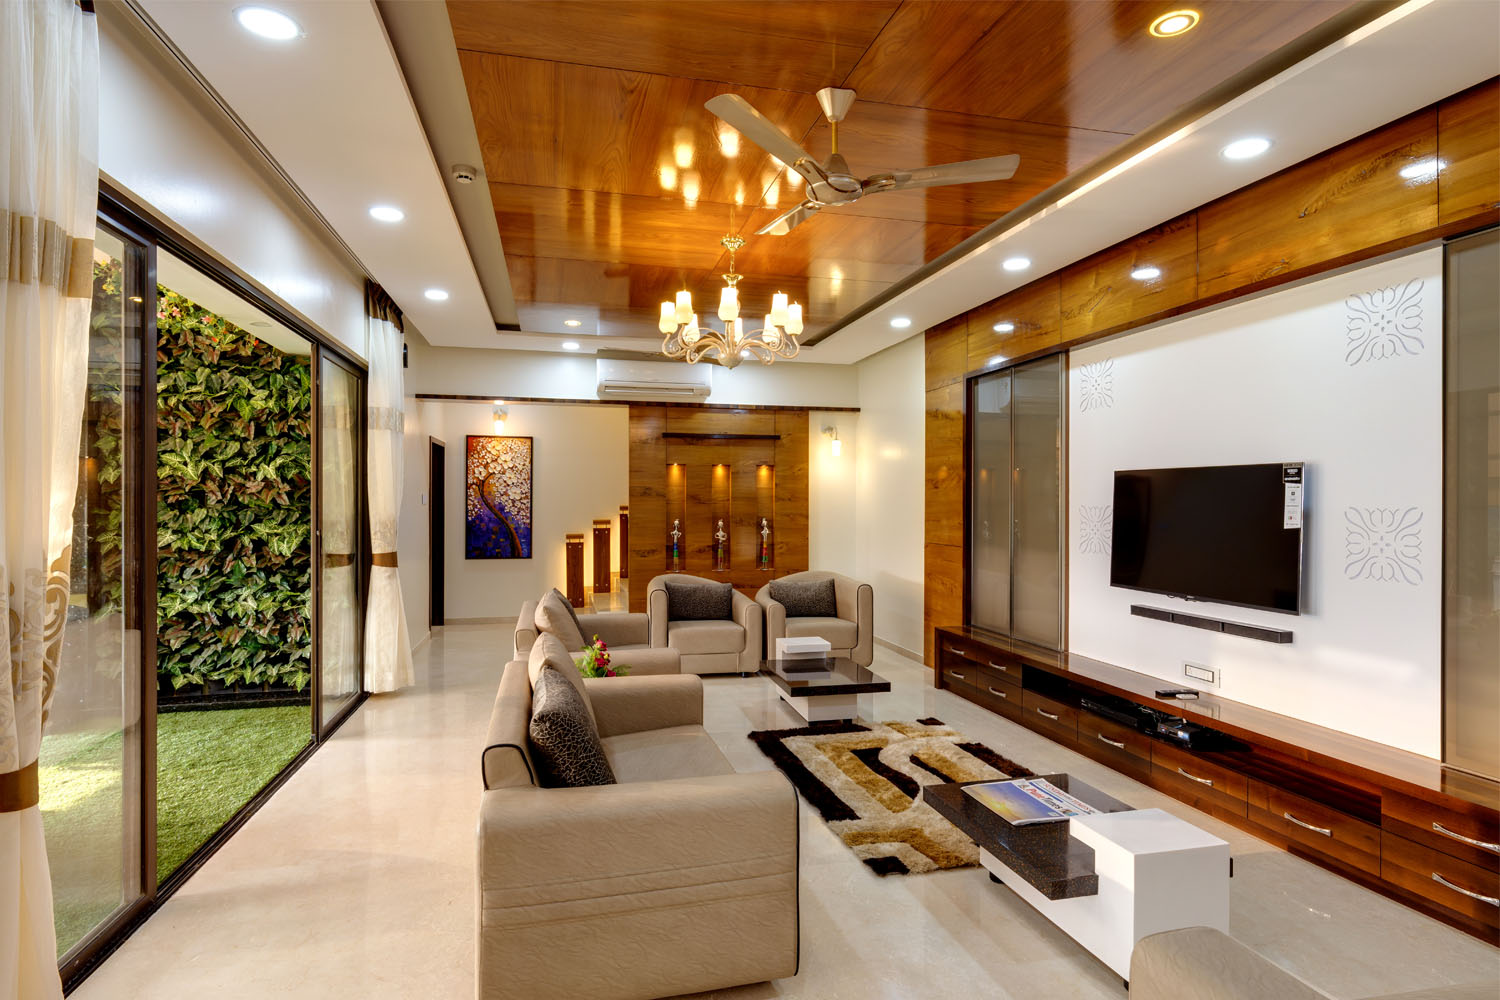 Best interior designer pune nerlekar interior designing for Interior design receiving room